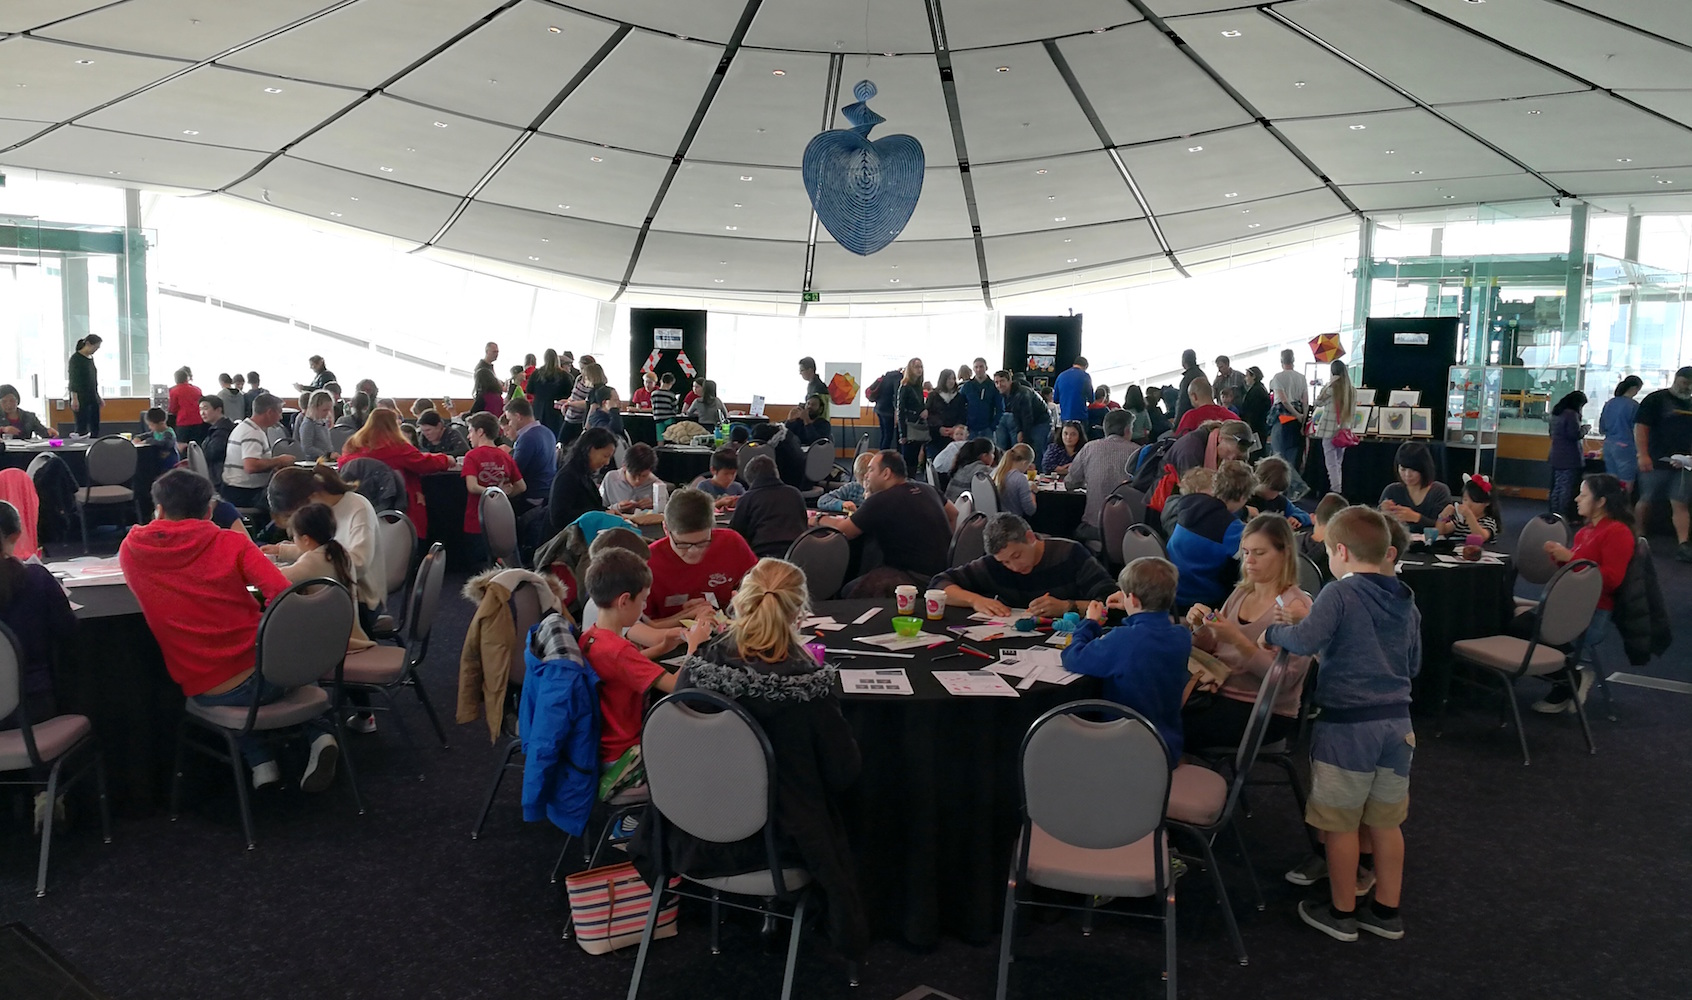 Maths Craft Festival 2017 in the Events Centre at the Auckland Museum